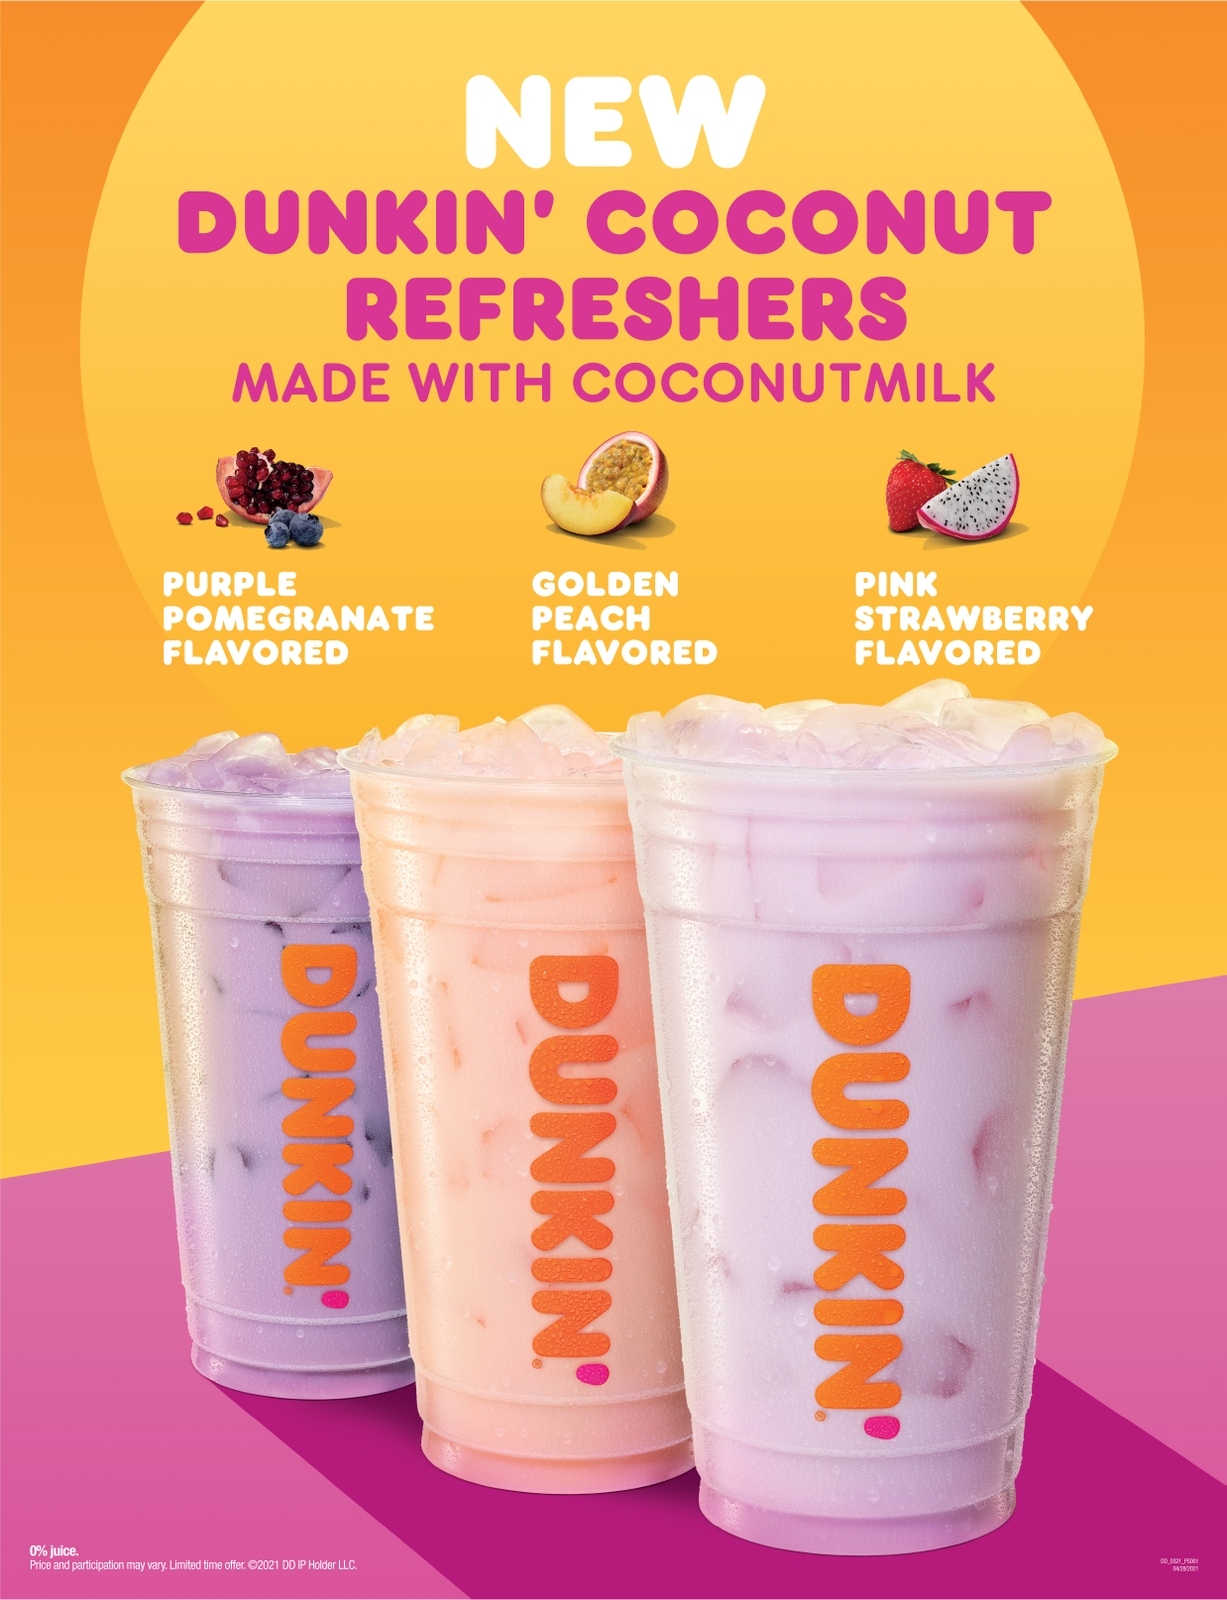 Pouring on More Non-Dairy Choices: Dunkin' Launches Coconutmilk with New Dunkin' Coconut Refreshers and Coconutmilk Iced Latte